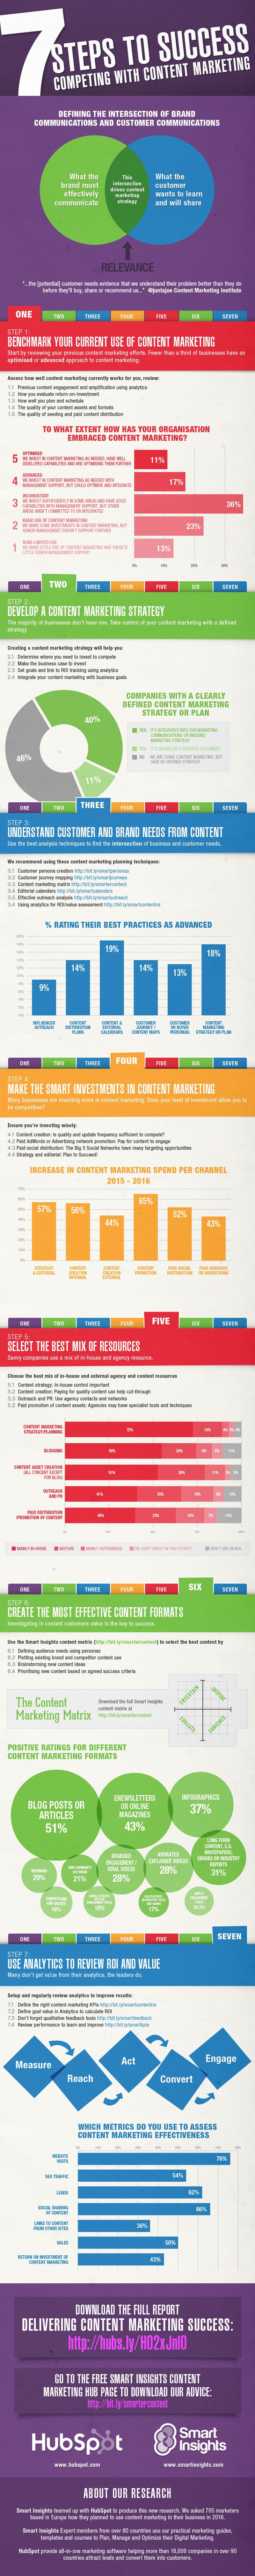 7 Steps to Success content marketing Infographic